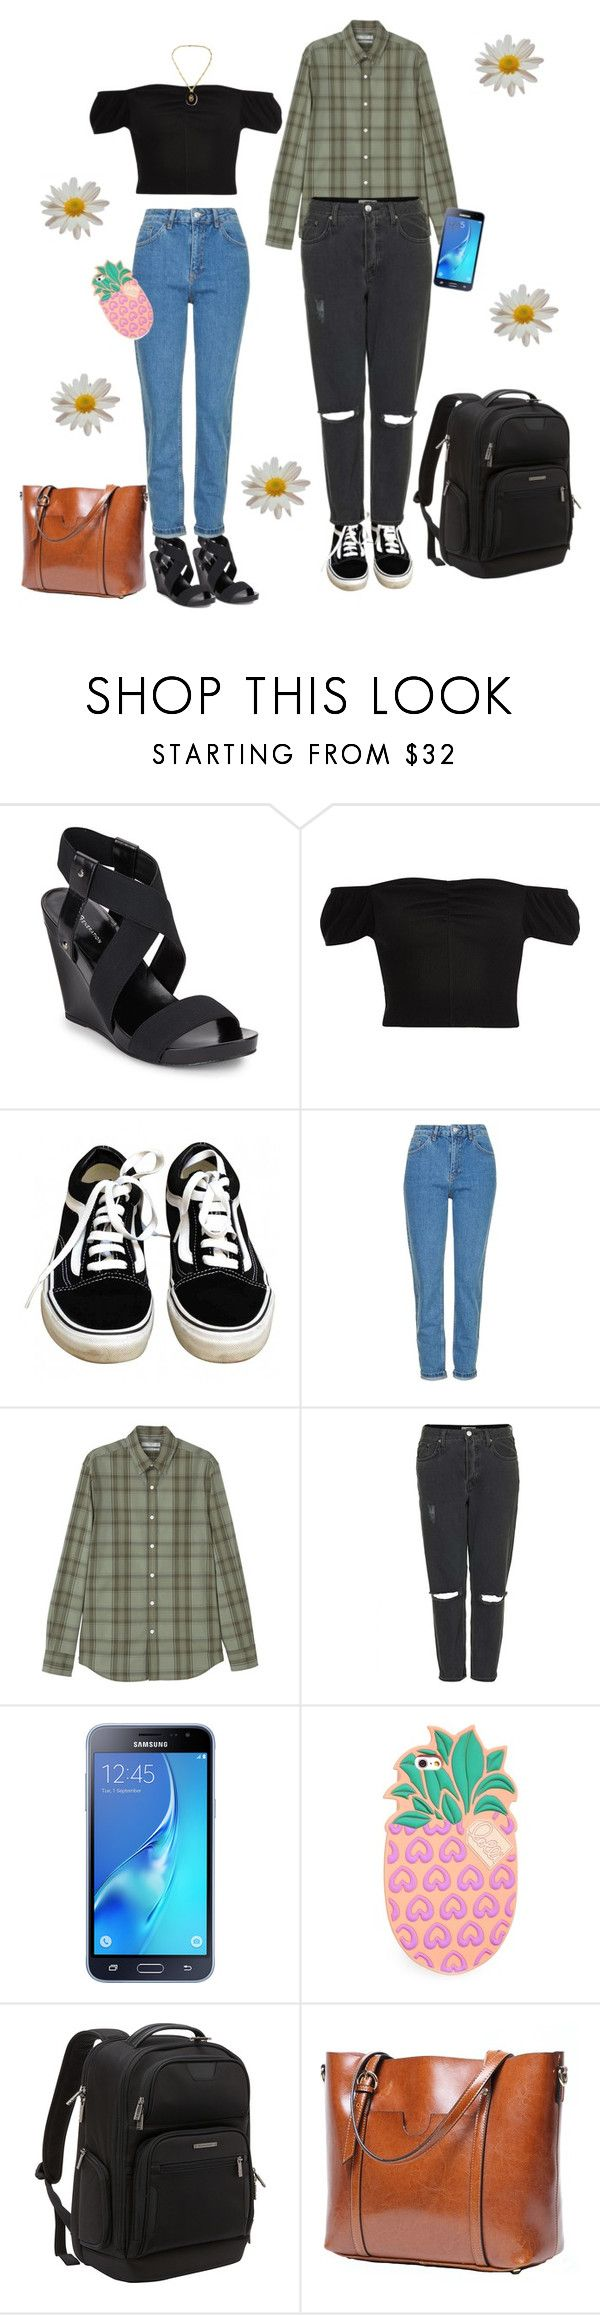 """Just a Couple of Kids out in Town"" by owlenstar on Polyvore featuring BCBGeneration, River Island, Vans, Topshop, MANGO MAN, Samsung, Lolli Swim and Briggs & Riley"